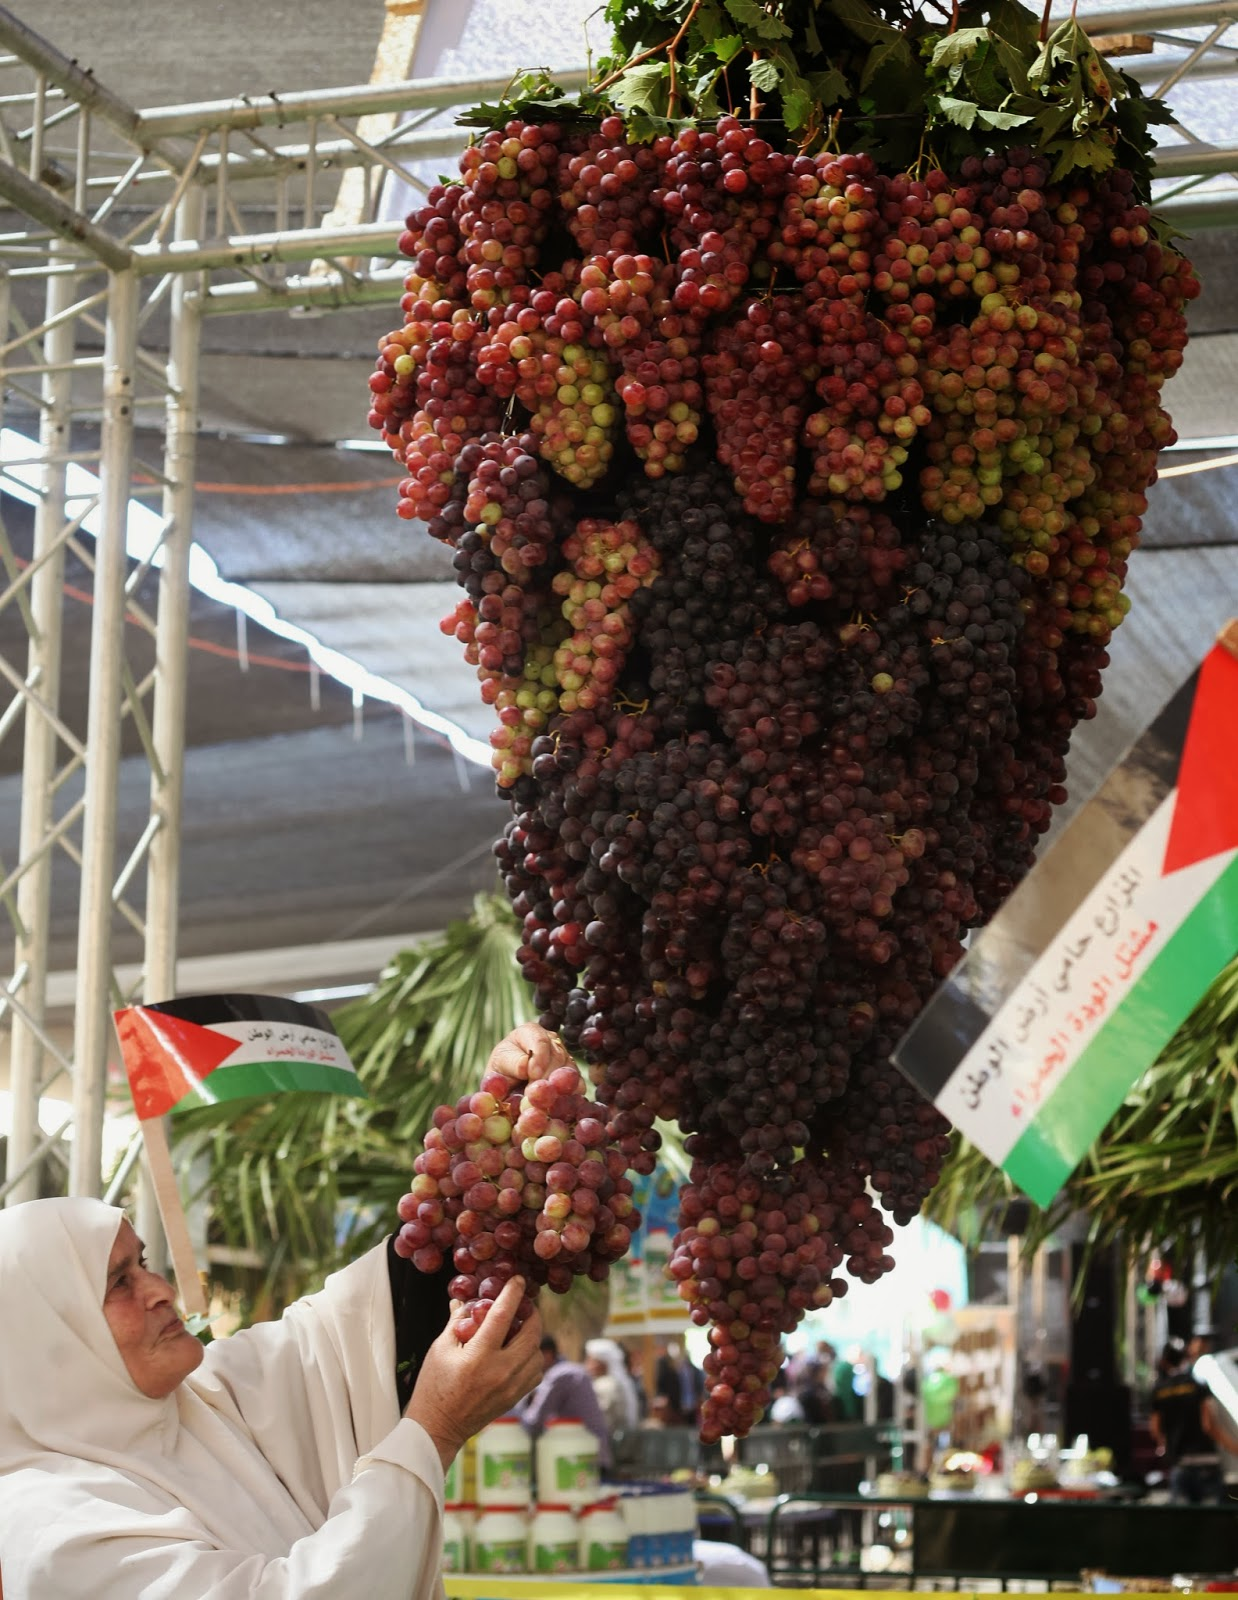 Palestinian Grape Festival Pictures